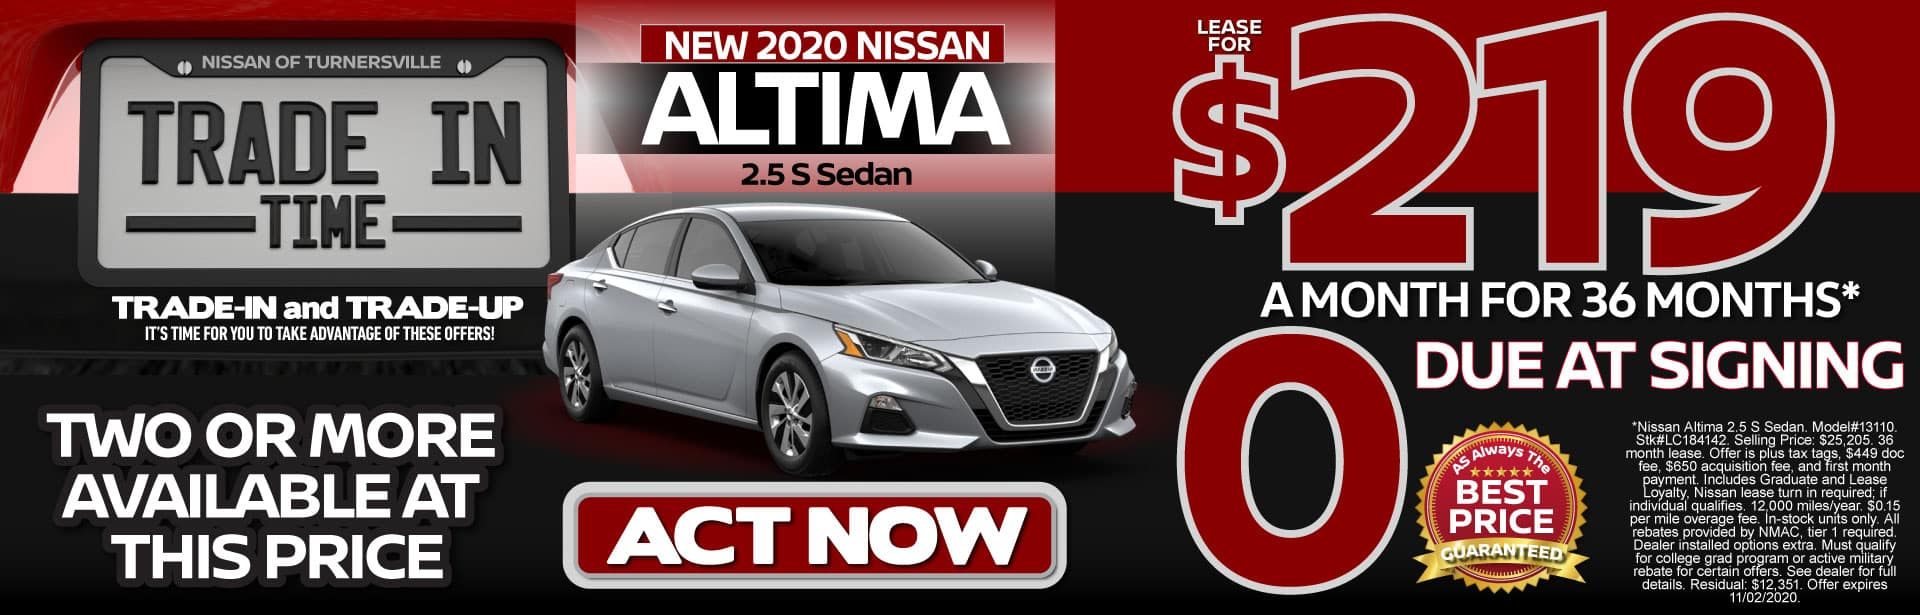 New 2020 Altima Lease for $219 a month for 36 months   Act Now